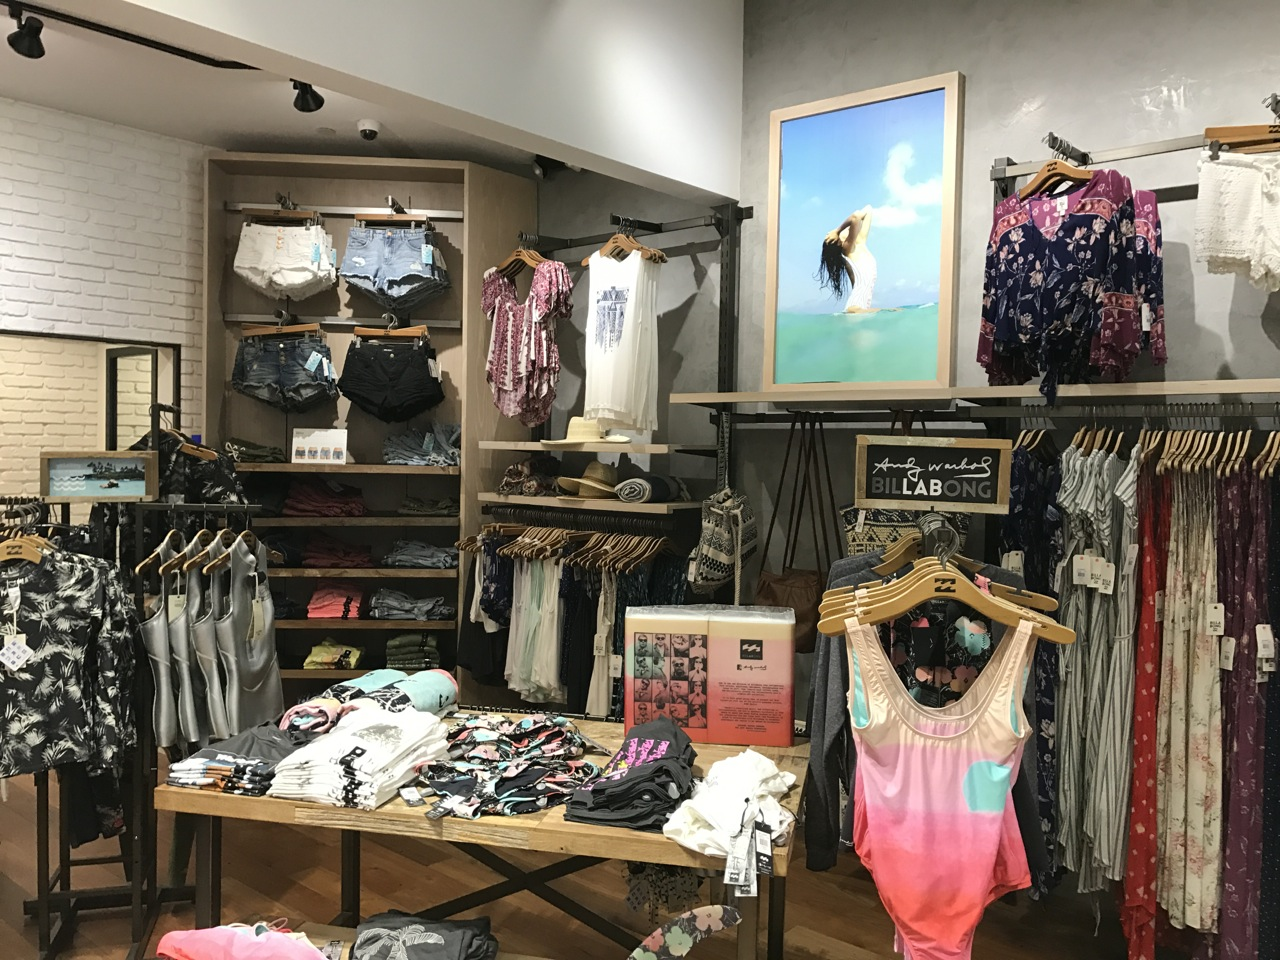 Billabong retail has been a bright spot in the Americas region - File photo by SES